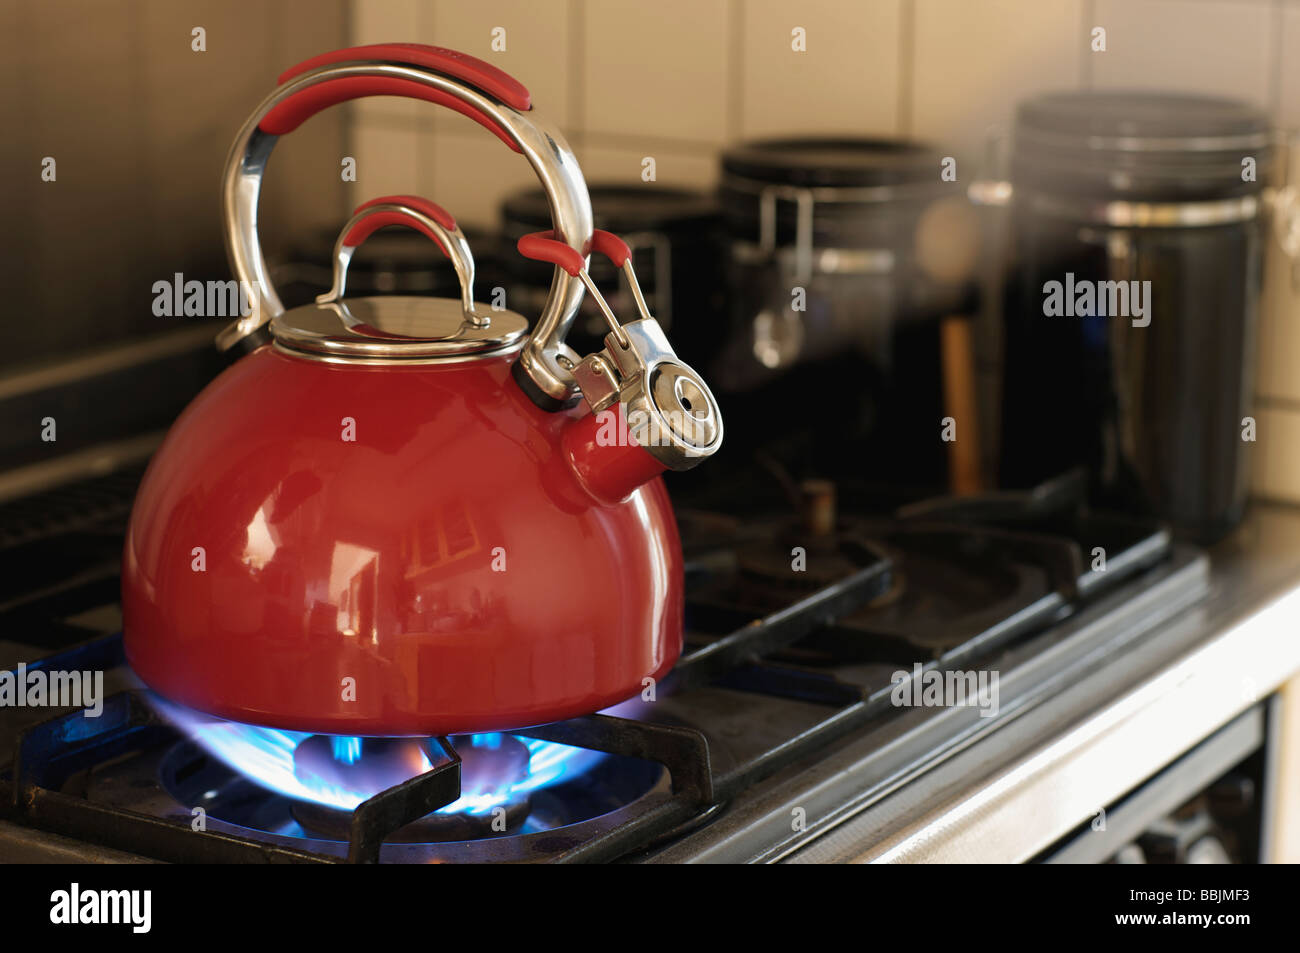 a-red-teapot-boiling-on-a-gas-stove-BBJM